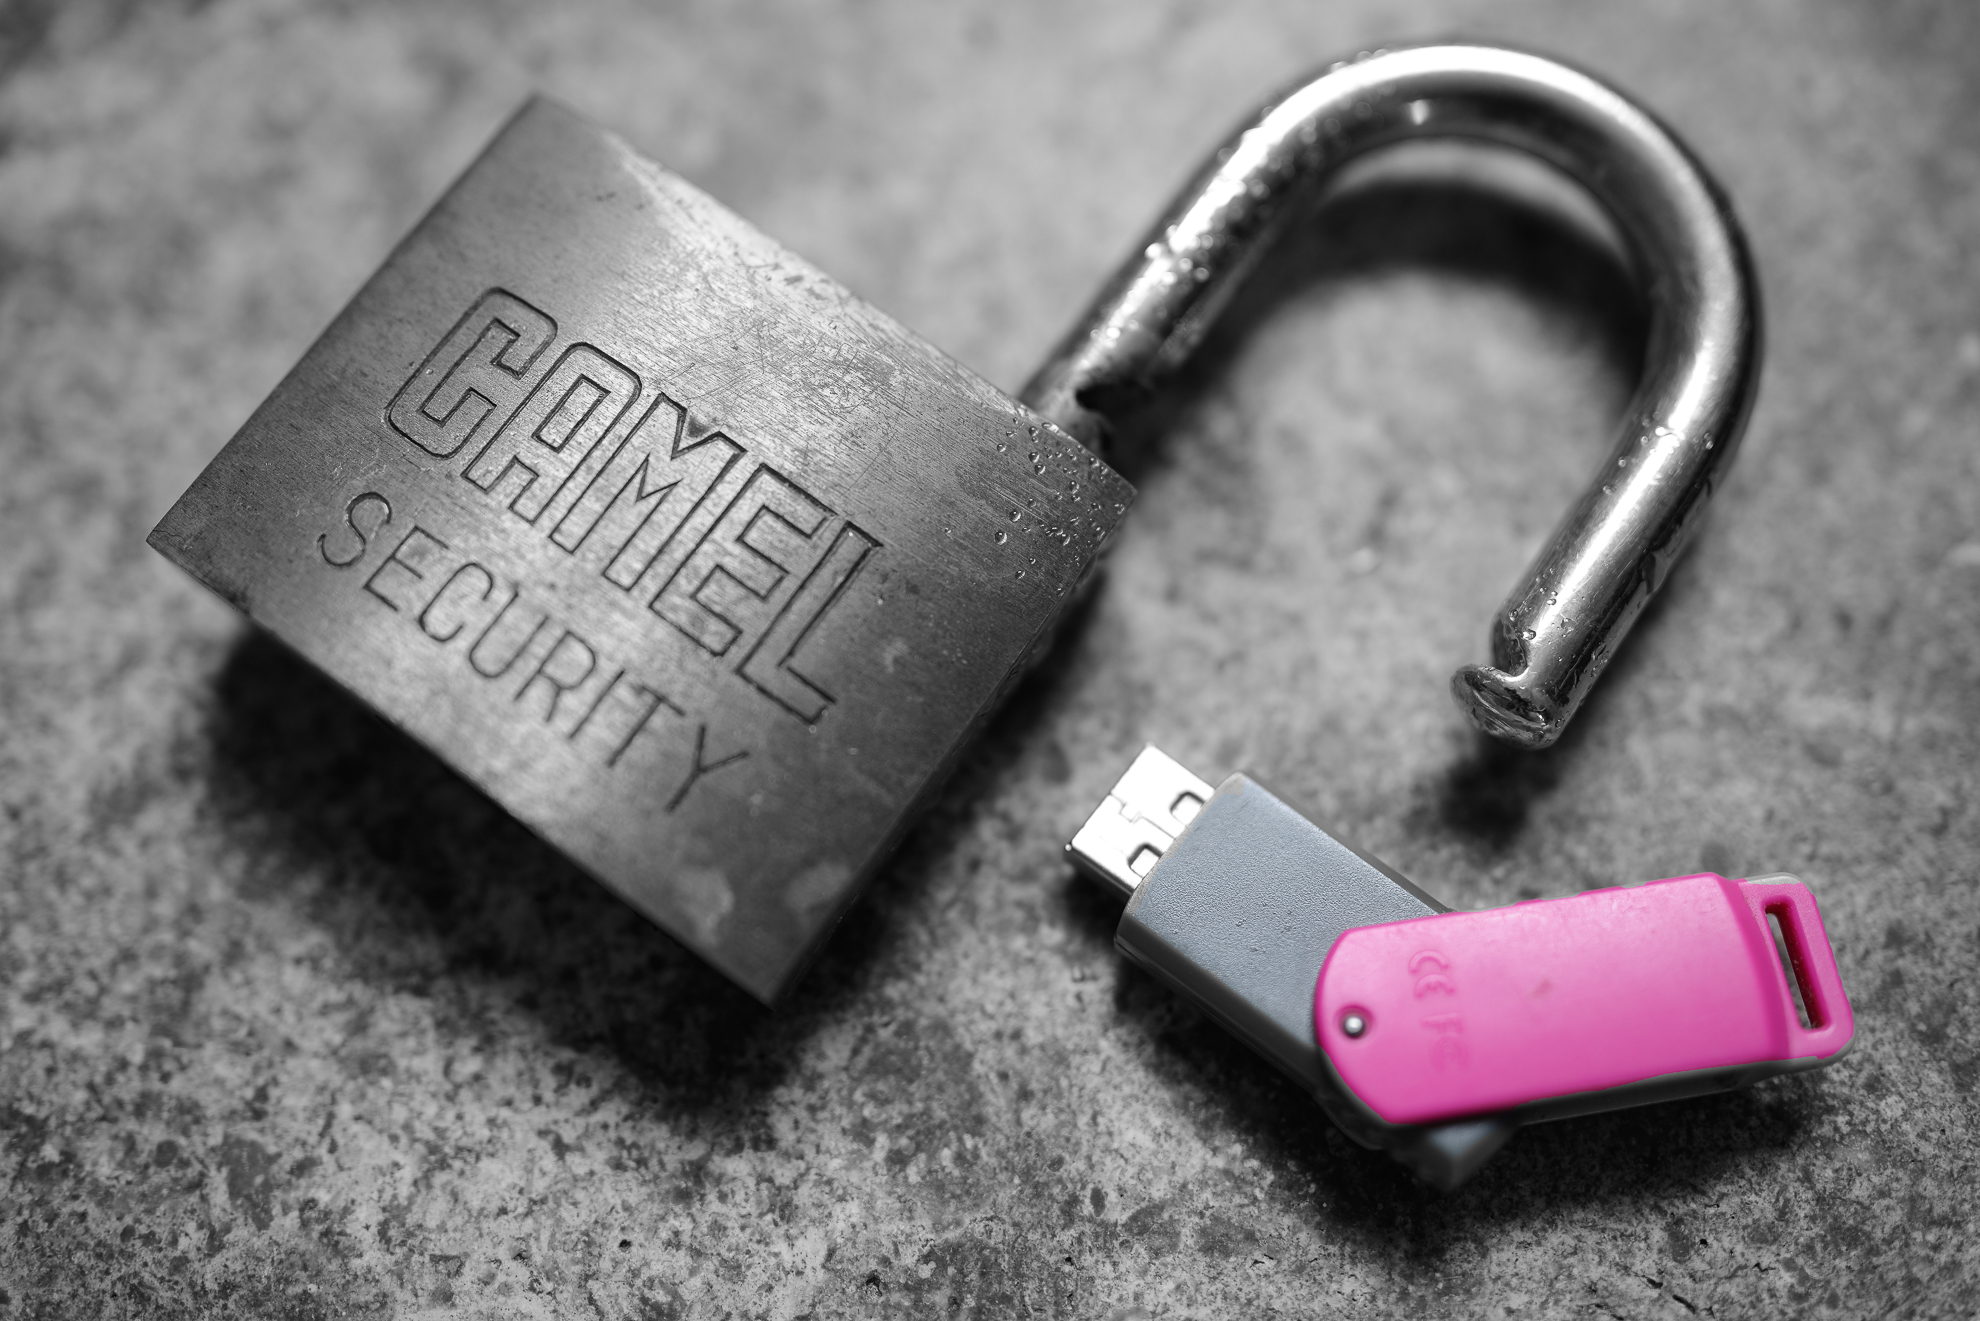 The Commercial Law Practice data protection image